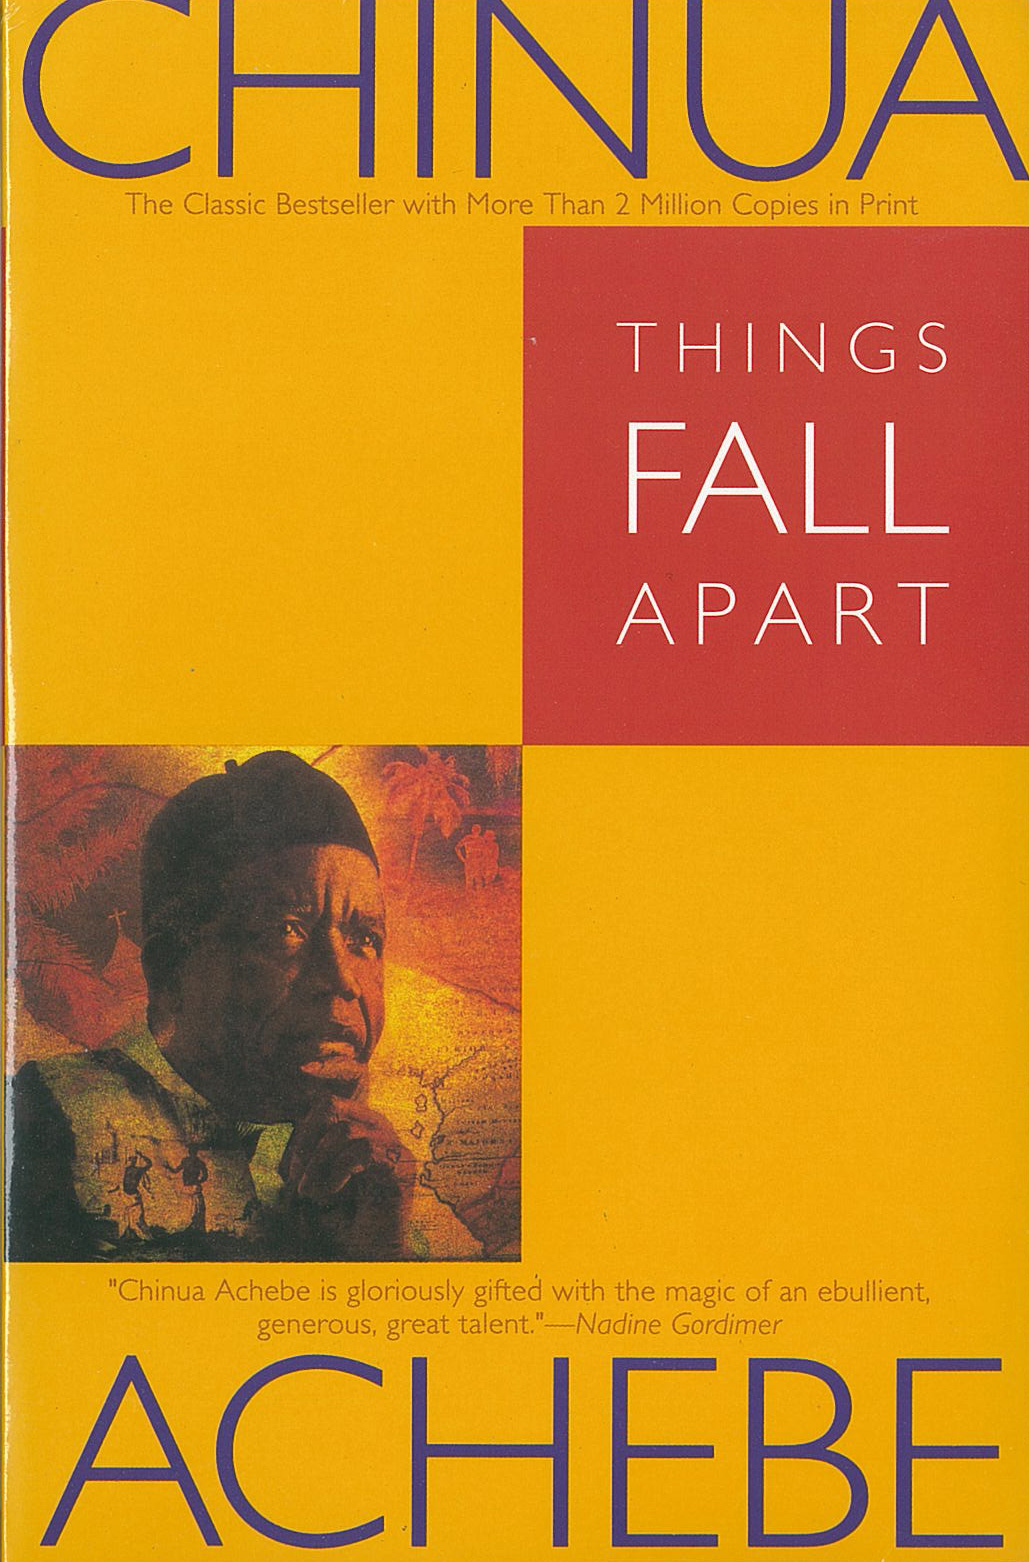 chinua achebe essays book details chinua achebe african book  things fall apart characters images things fall apart characters todo se desmorona chinua achebe